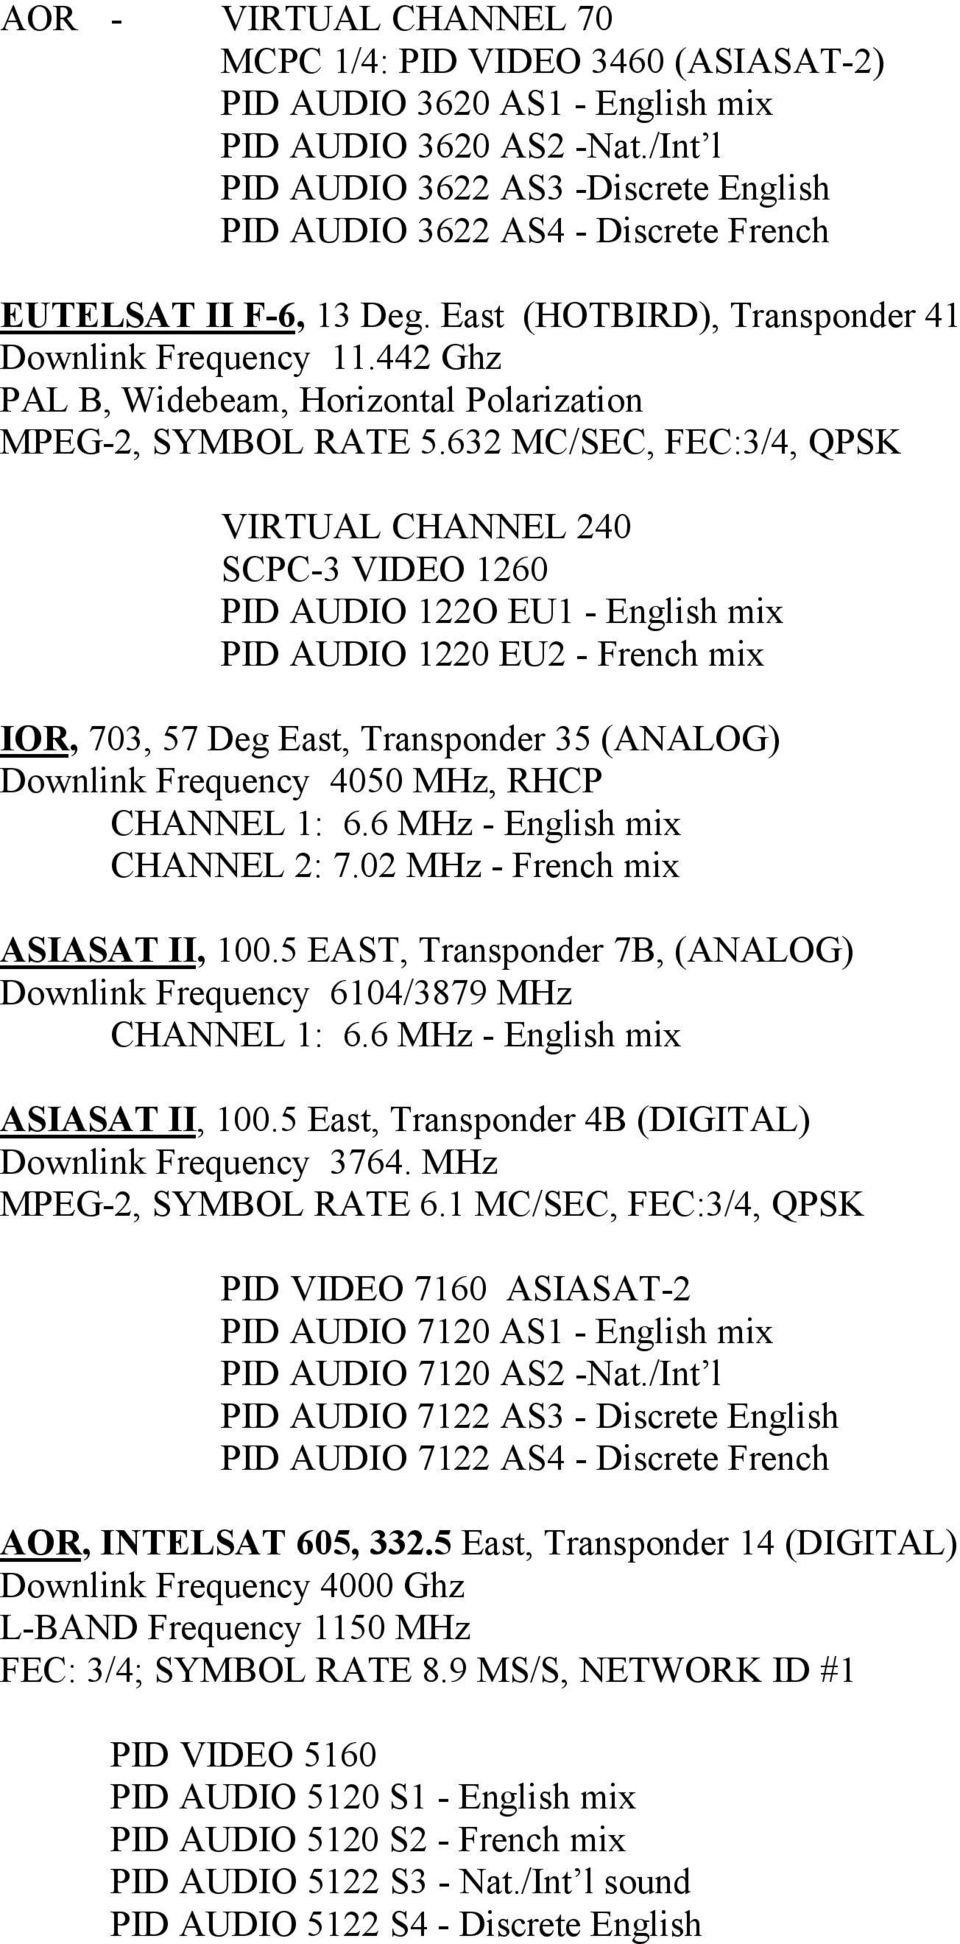 Asiasat 2 Channels List